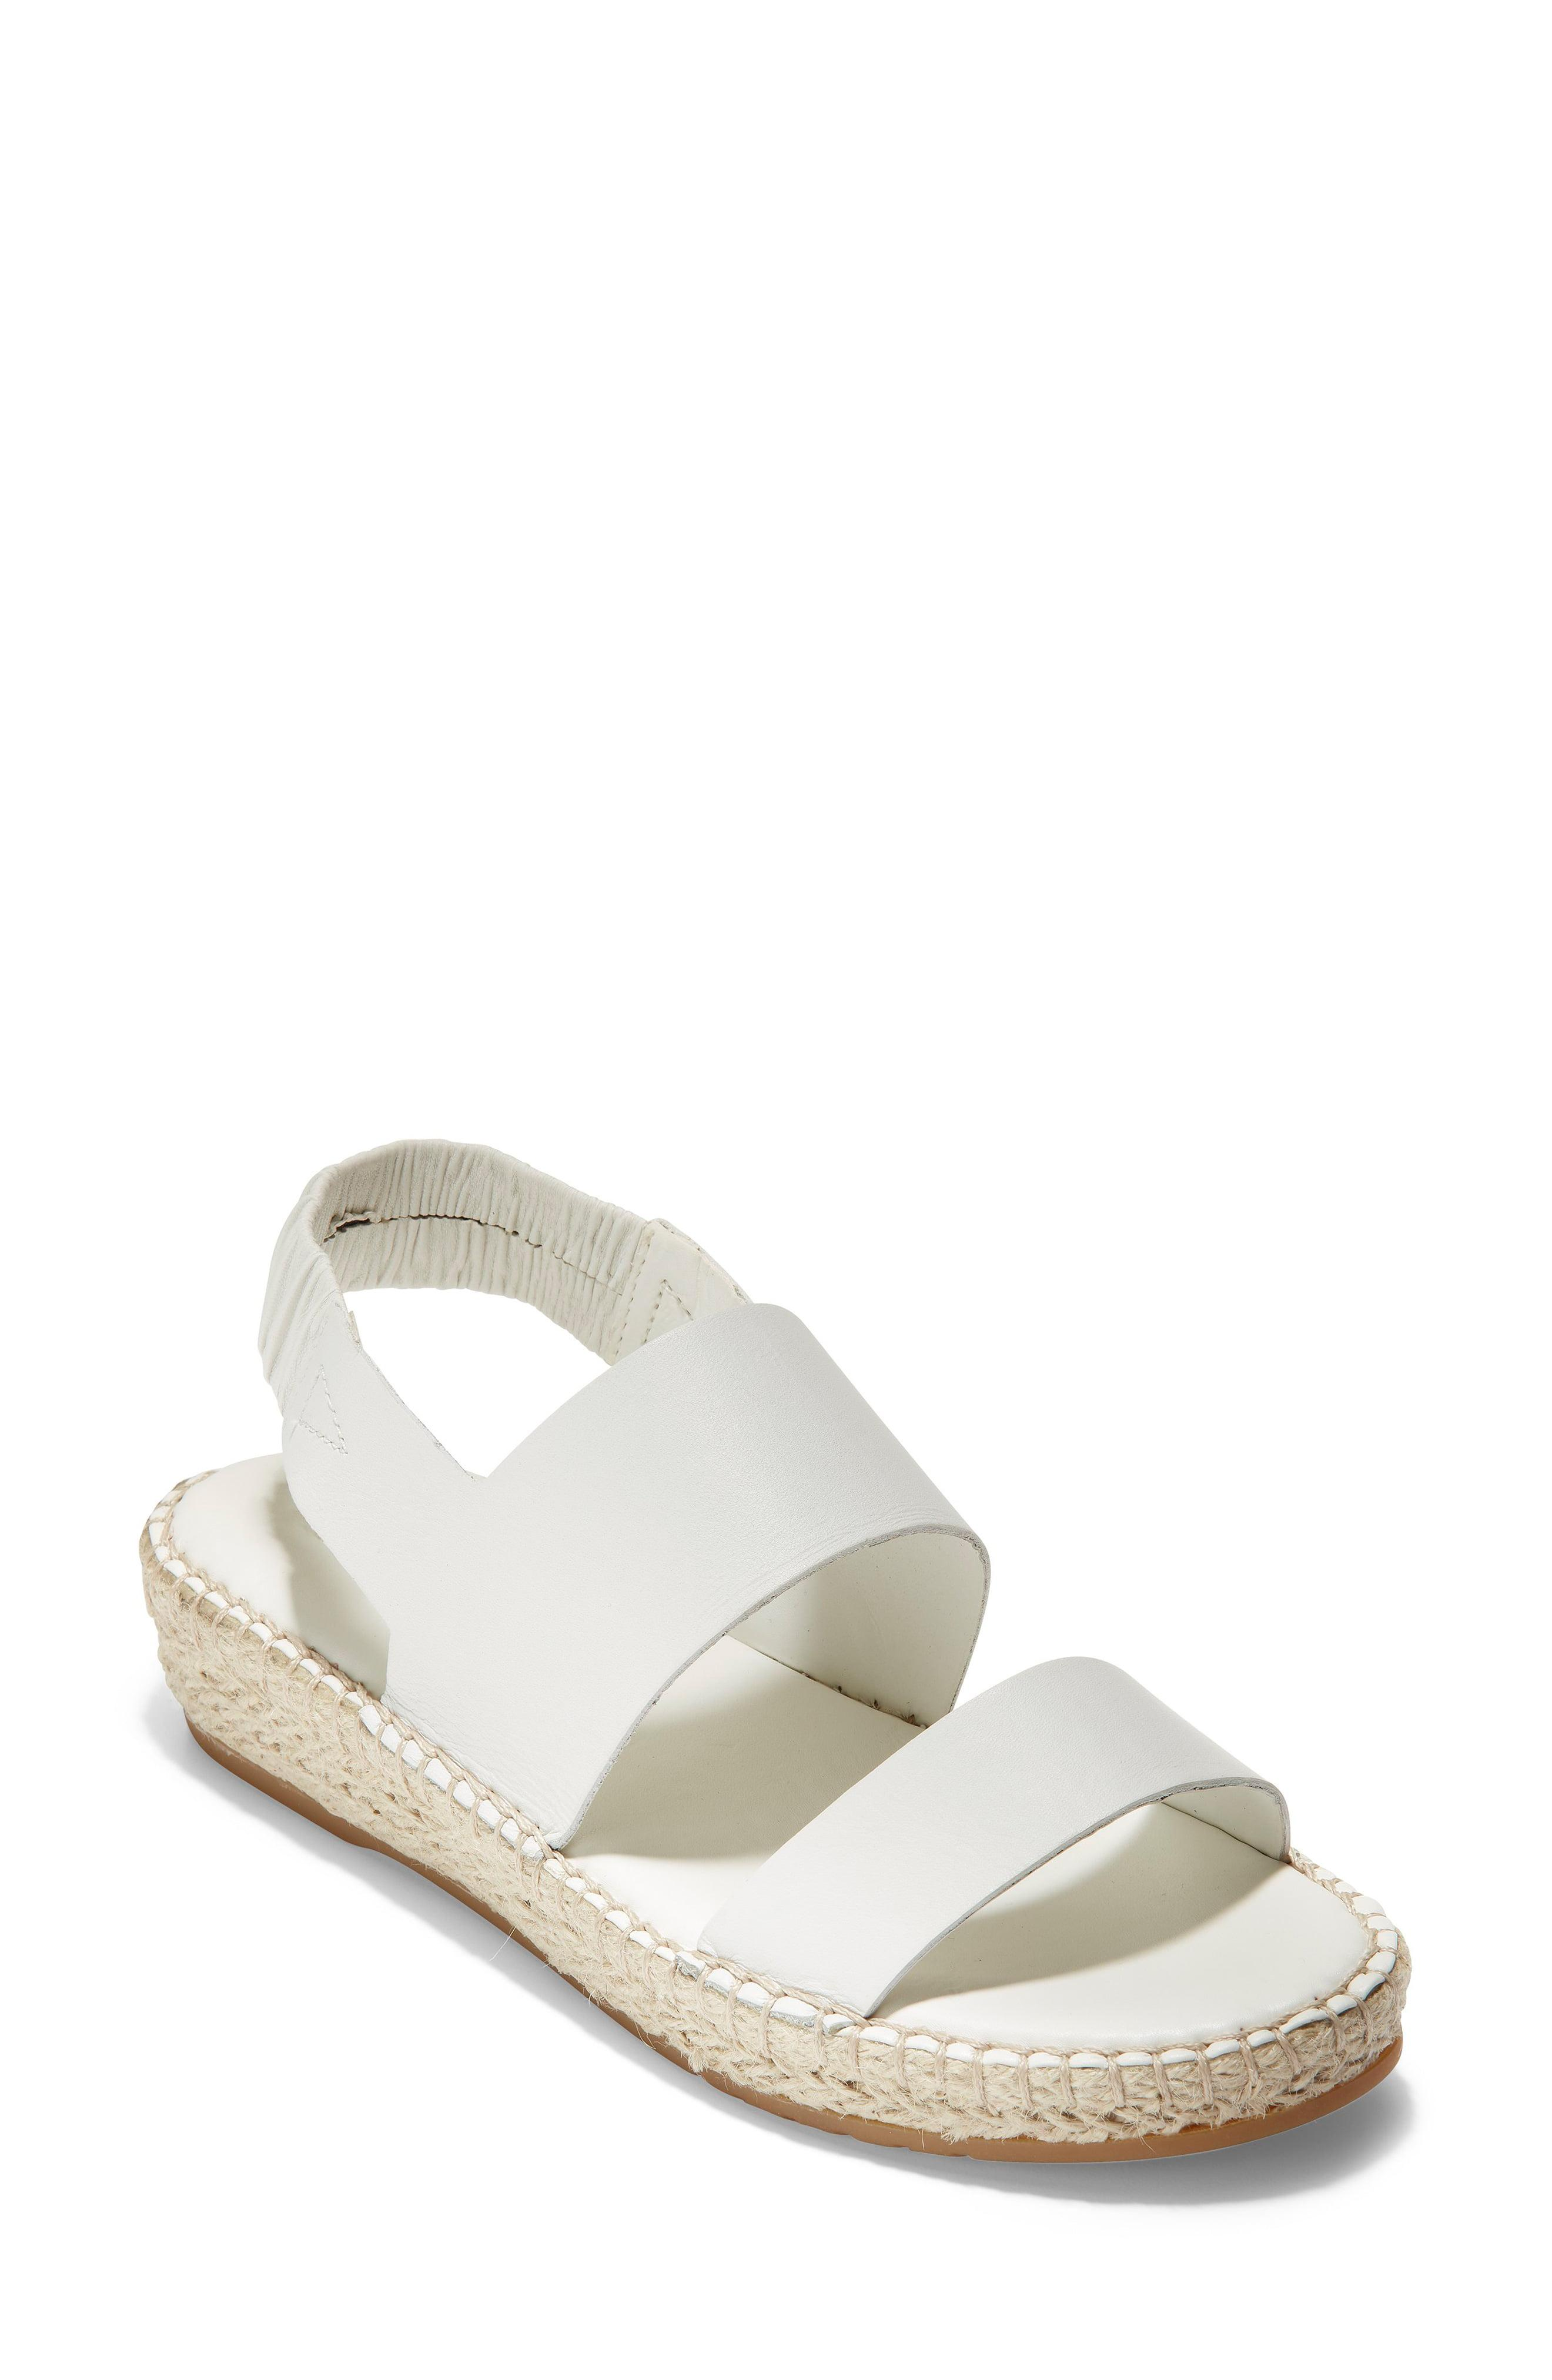 69c02445e0f Lyst - Cole Haan Cloudfeel Espadrille Sandals in White - Save 31%